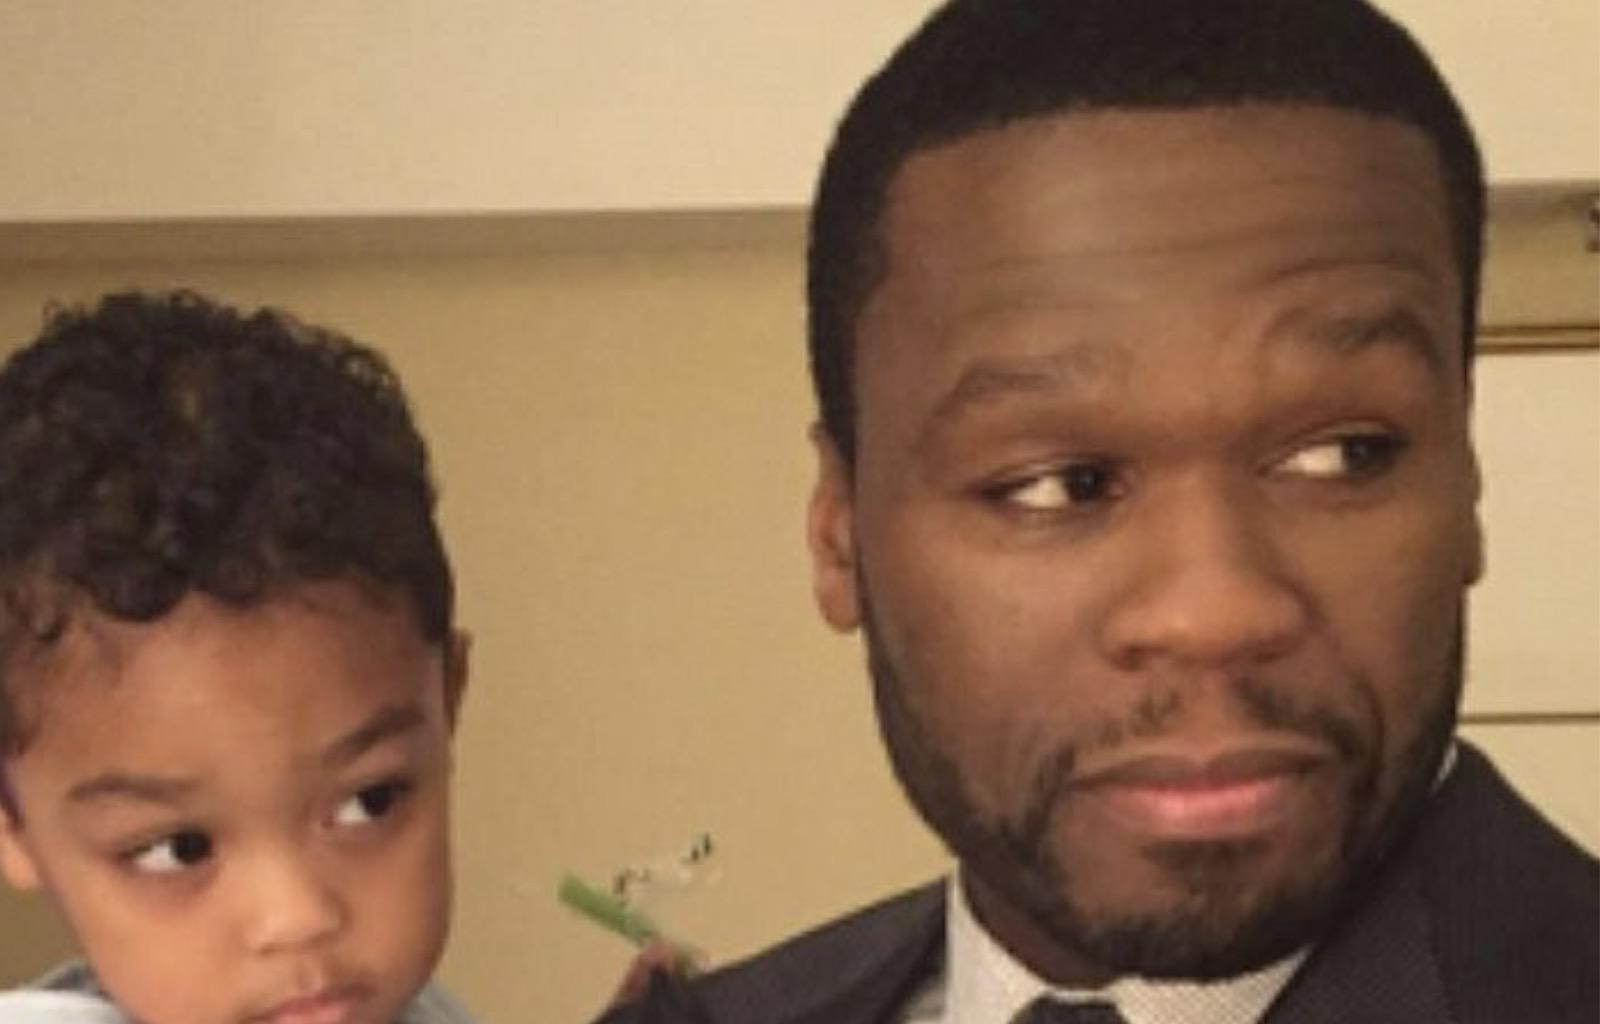 50 Cent Rents Out One Of The Only Two Reopened Toys 'R' Us Stores For His Son!